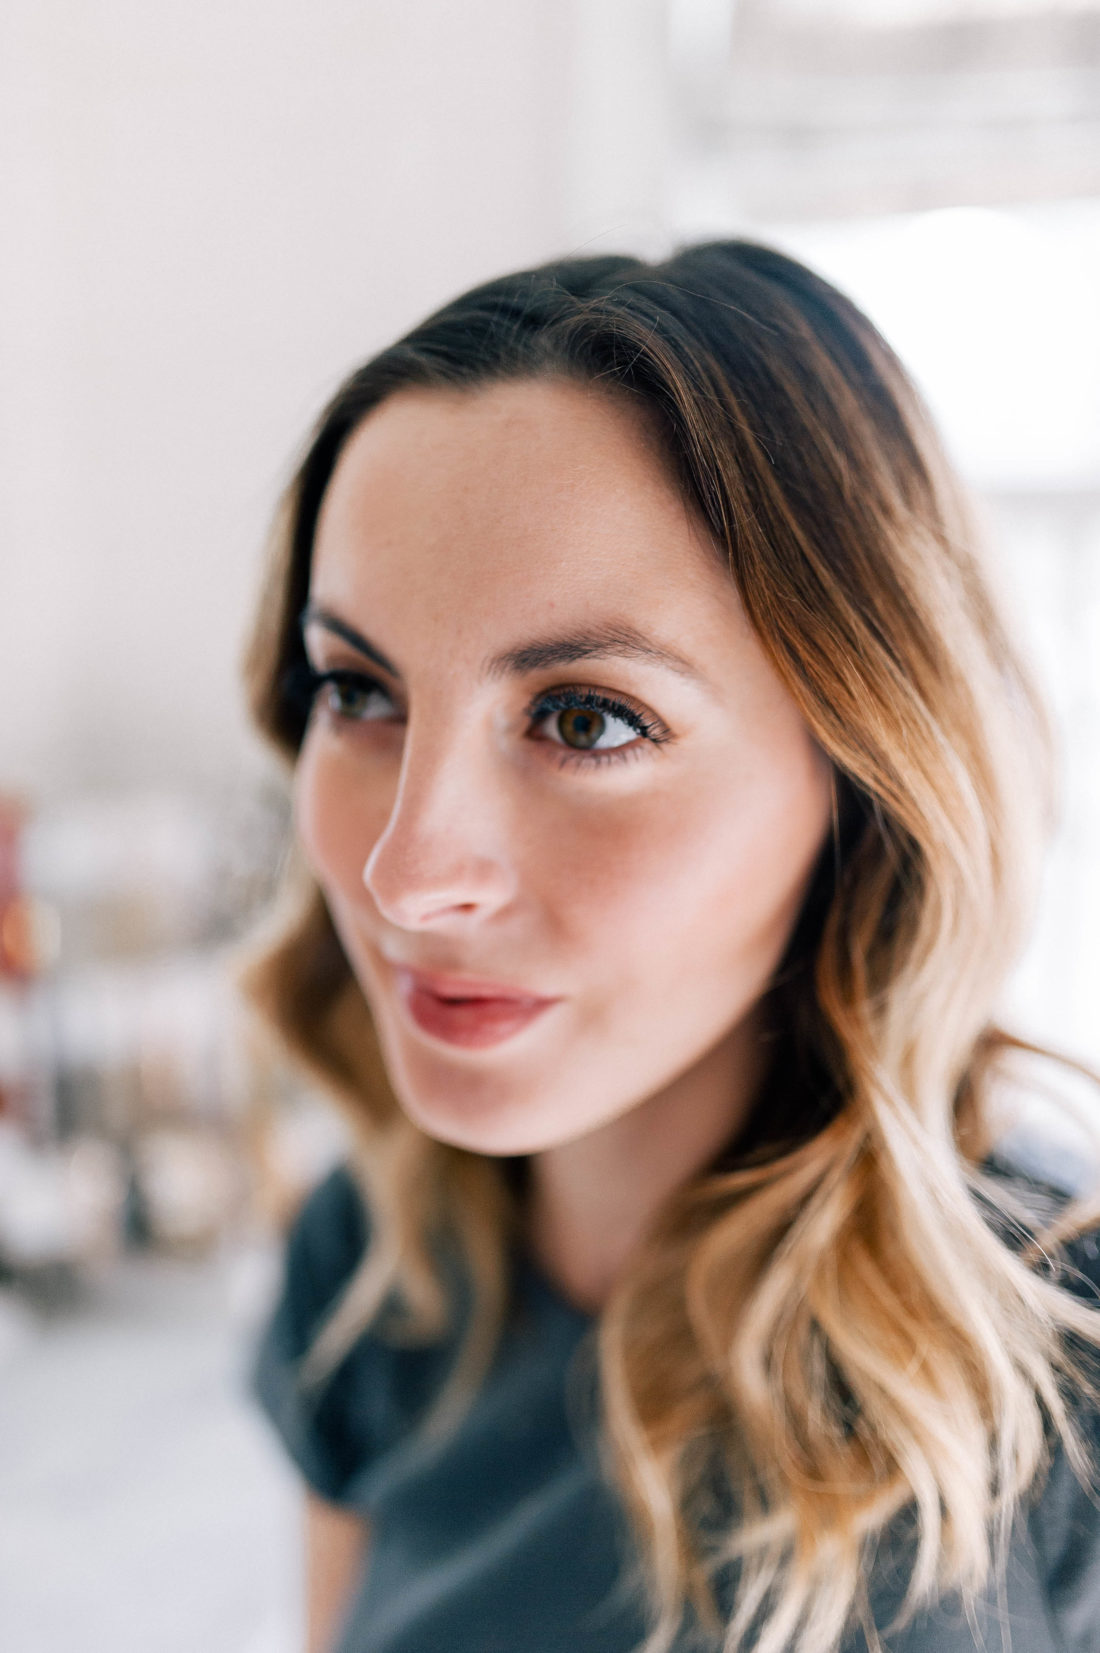 Eva Amurri Martino shows her thicker, tinted brows before makeup application